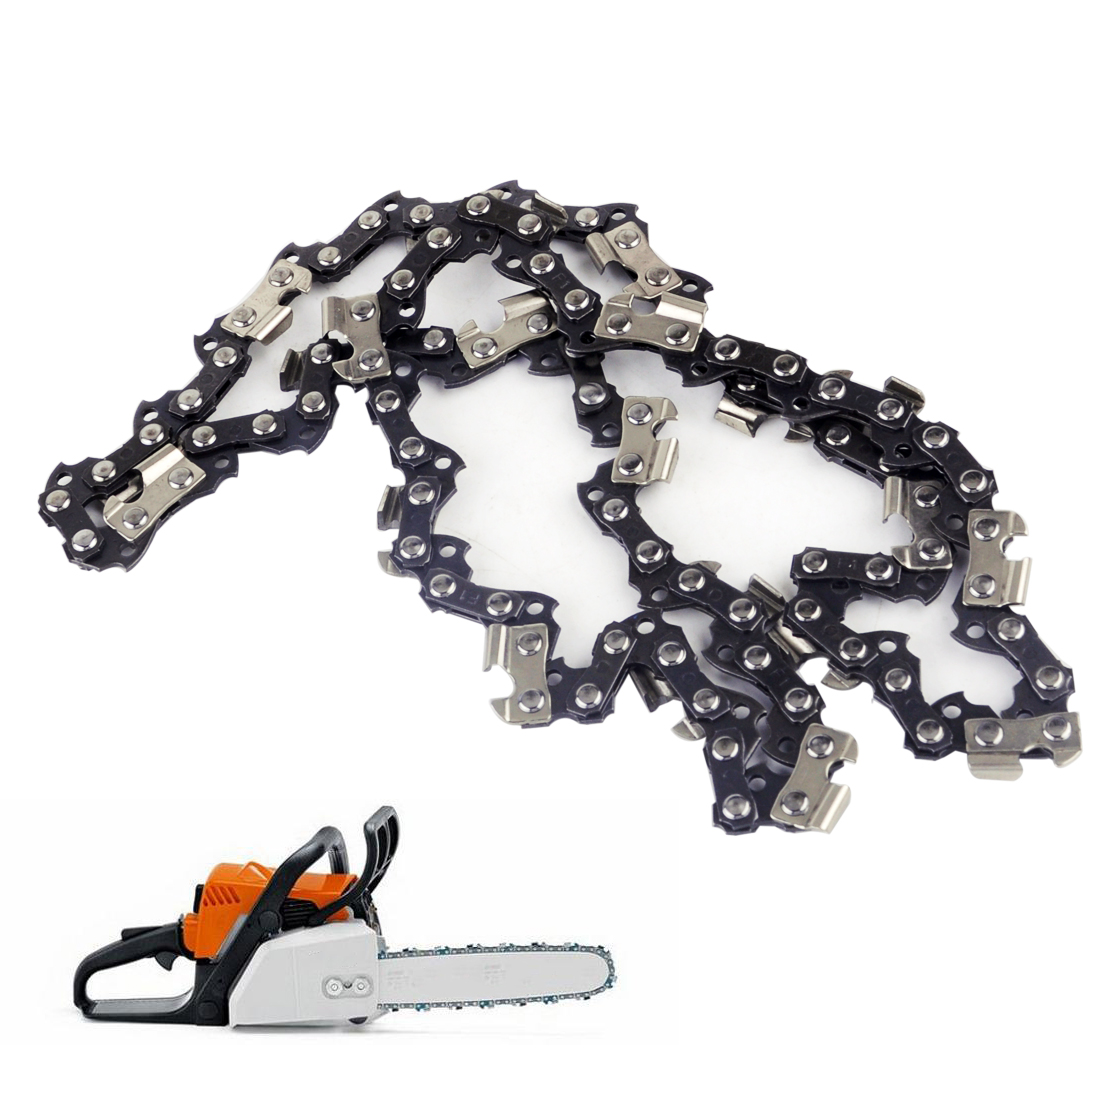 LETAOSK New Chainsaw Saw Chain 3/8″ .050″ 44DL Fit for STIHL MS170 MS180 MS181 MS190 MS210